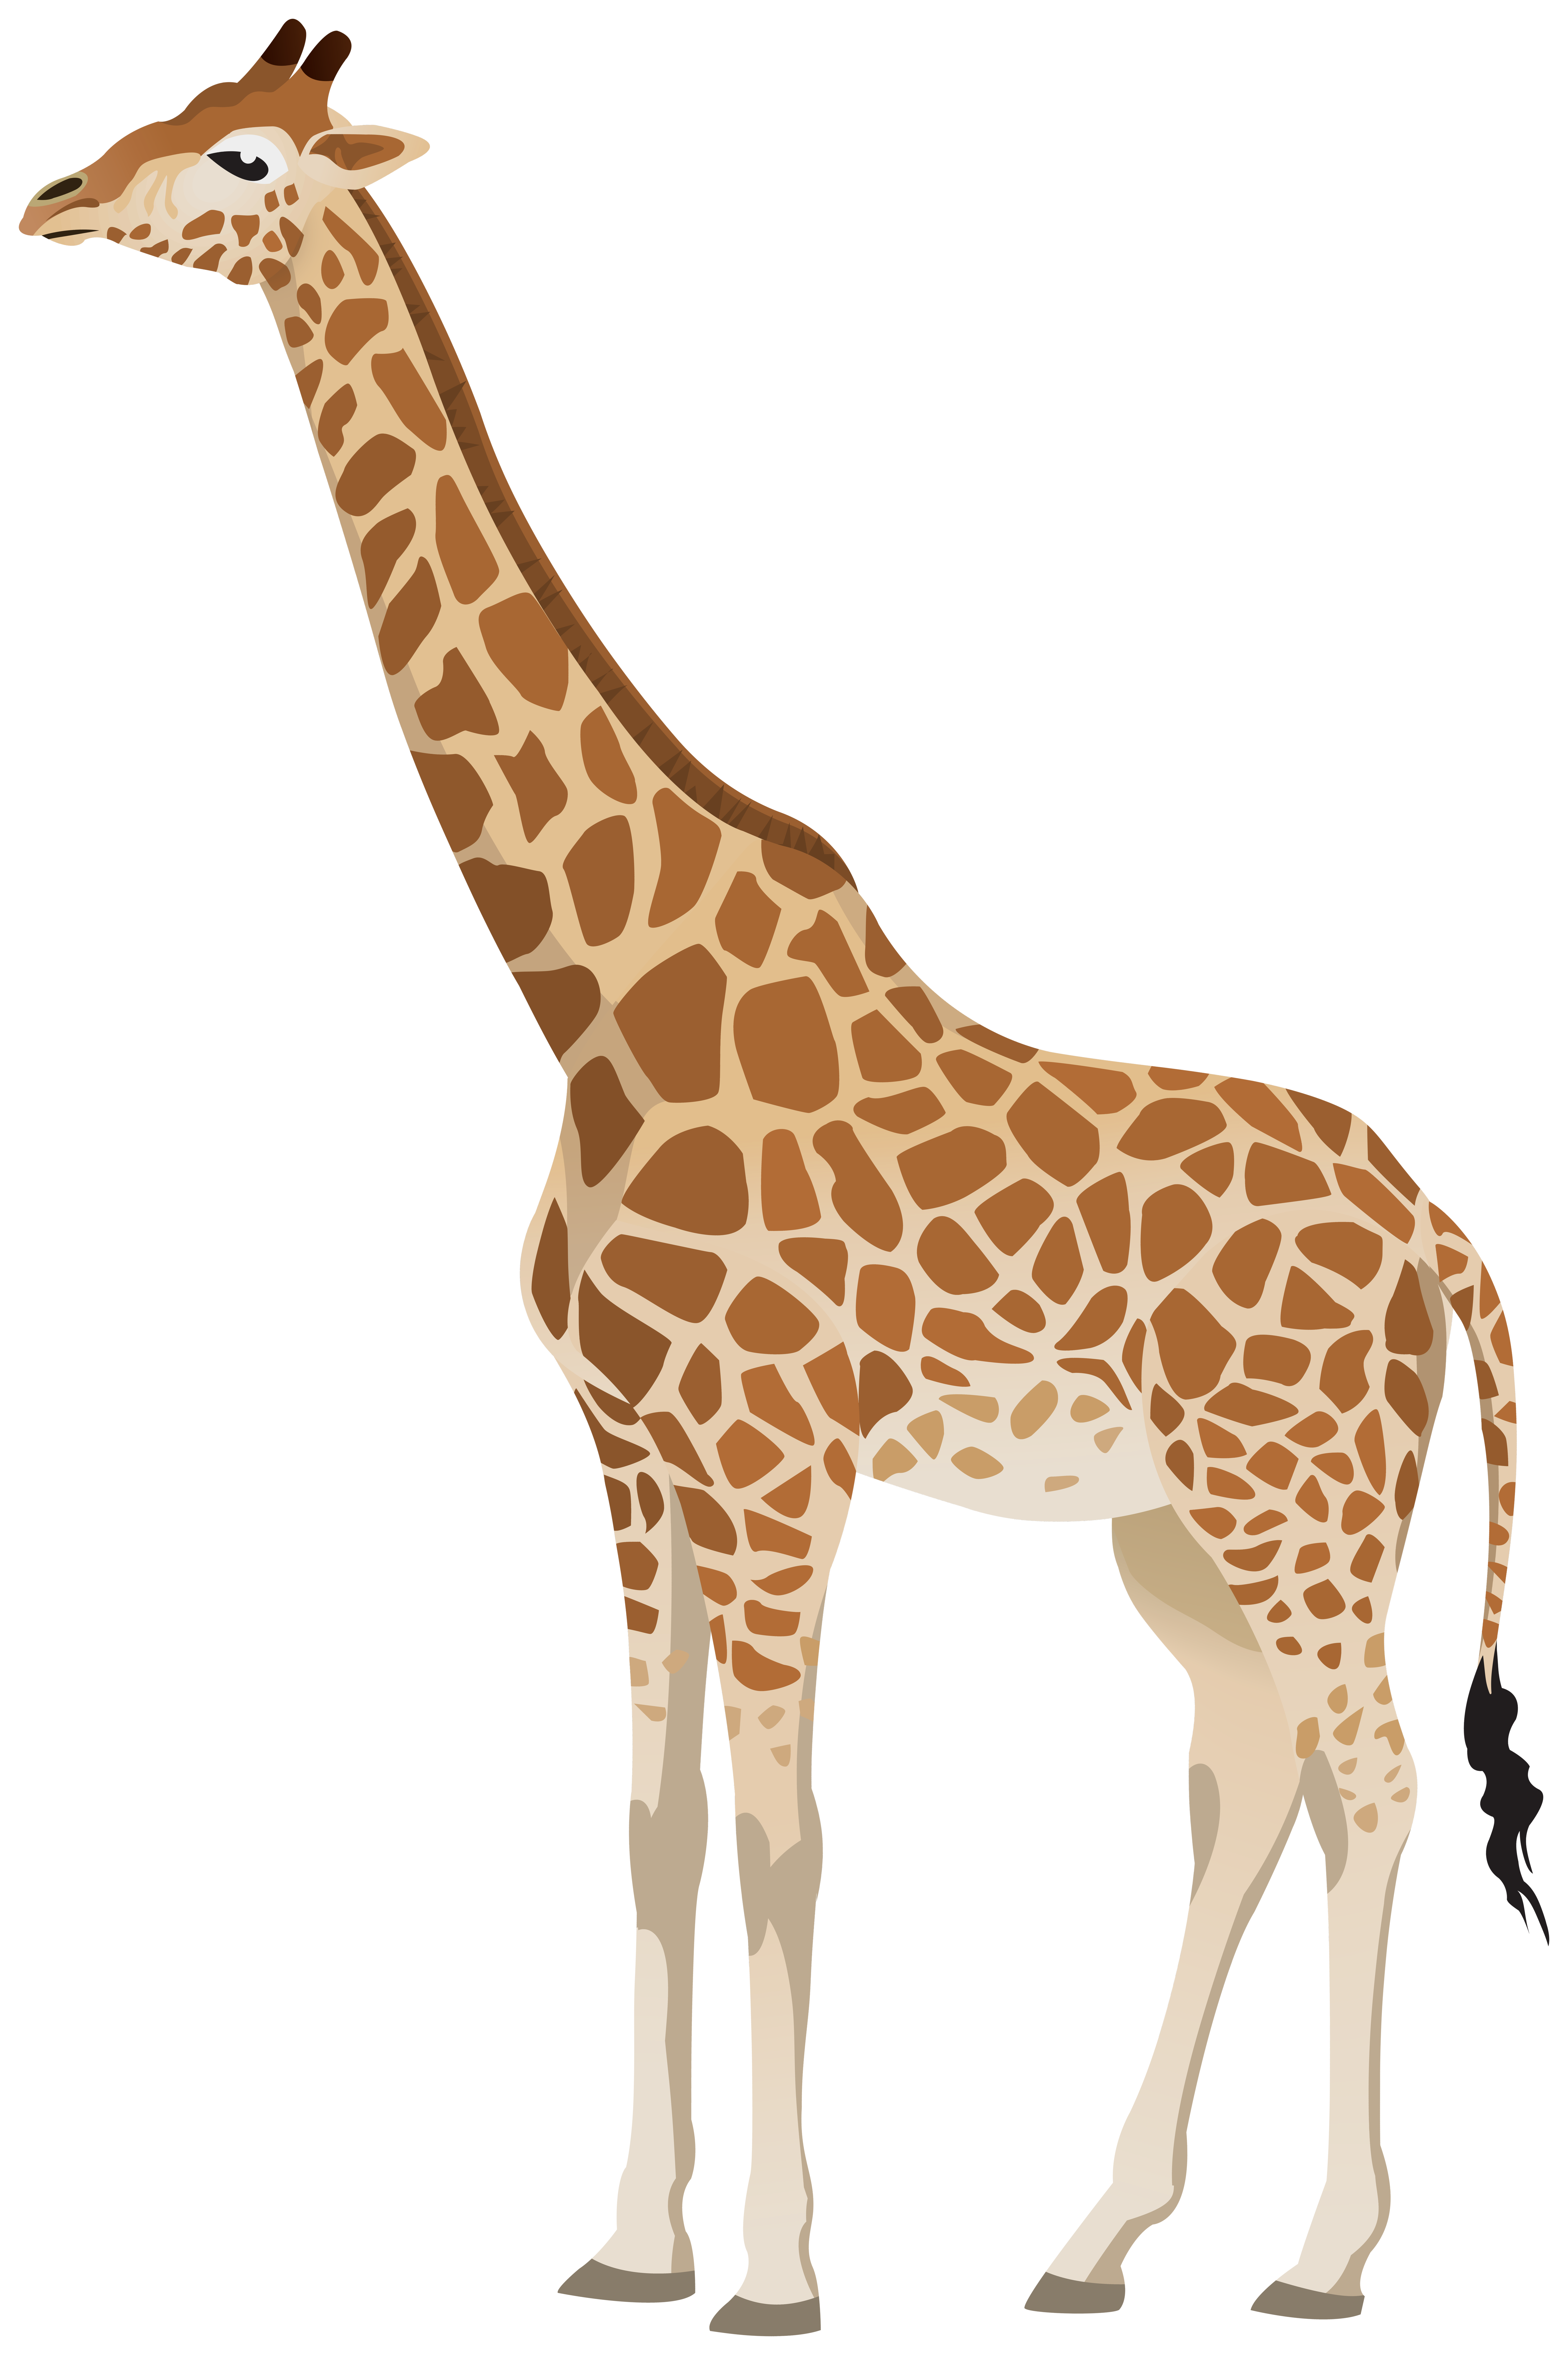 Girrafe clipart clipart transparent library Giraffe Clipart Image | Gallery Yopriceville - High-Quality Images ... clipart transparent library